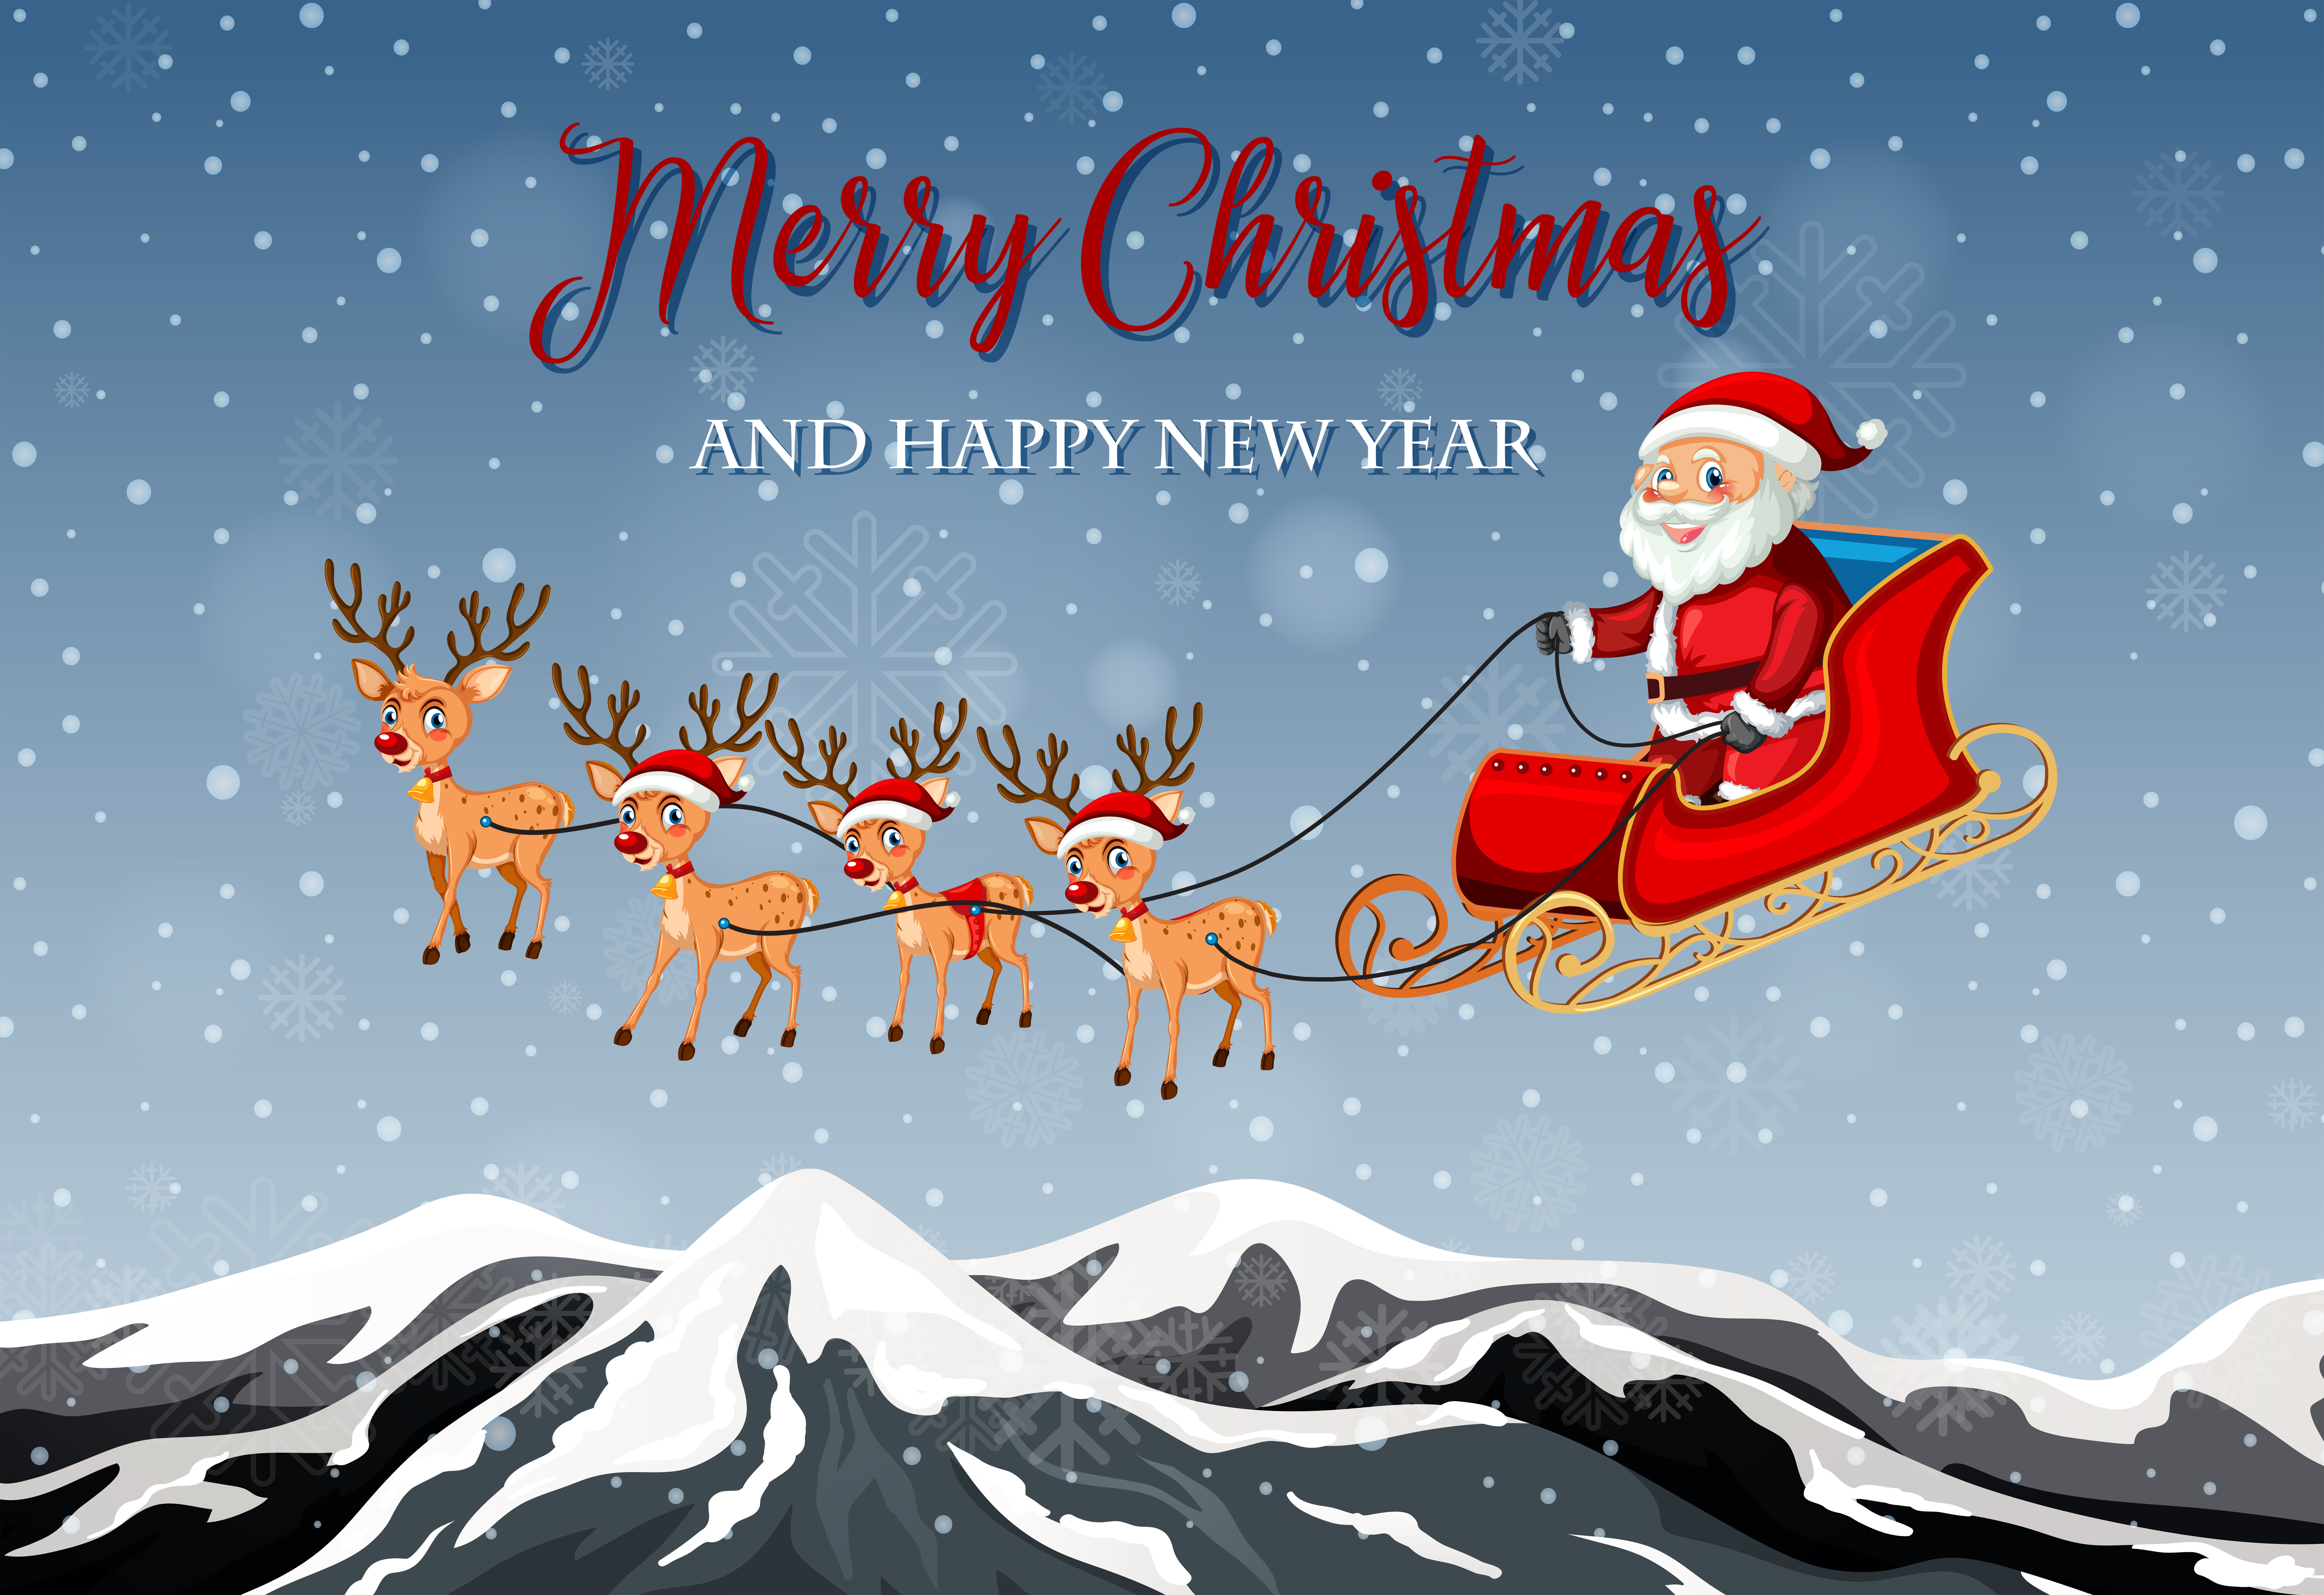 Merry christmas card template - Download Free Vectors ...